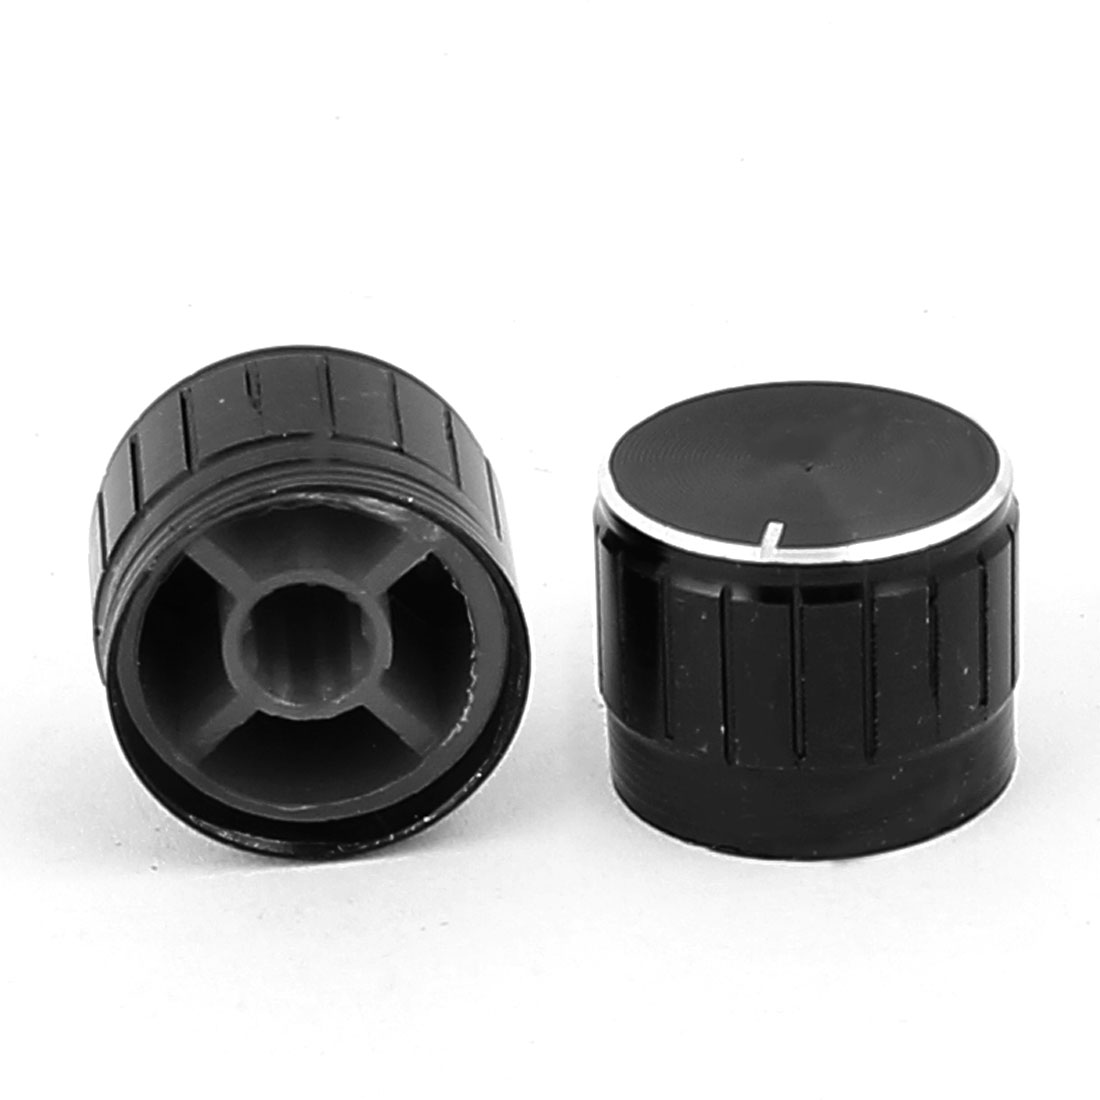 2 Pcs 21mm x 6mm Aluminium Alloy Potentiometer Control Knob Mini Cap Knurled Button Black